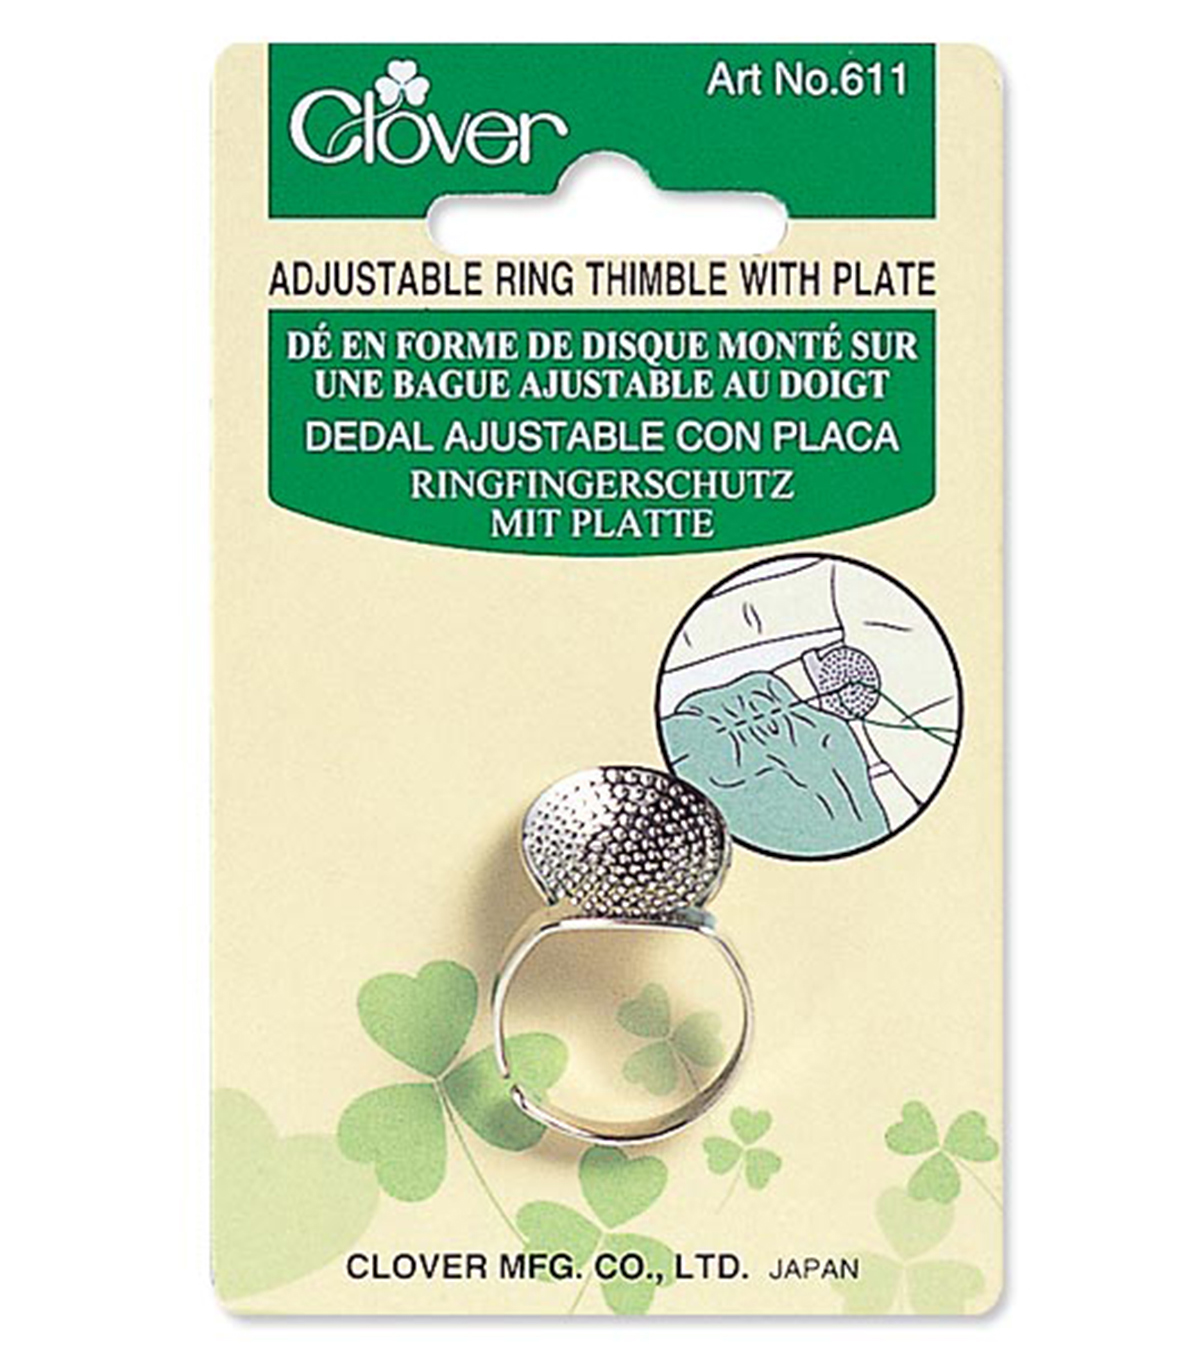 Clover Ring Thimble with Plate